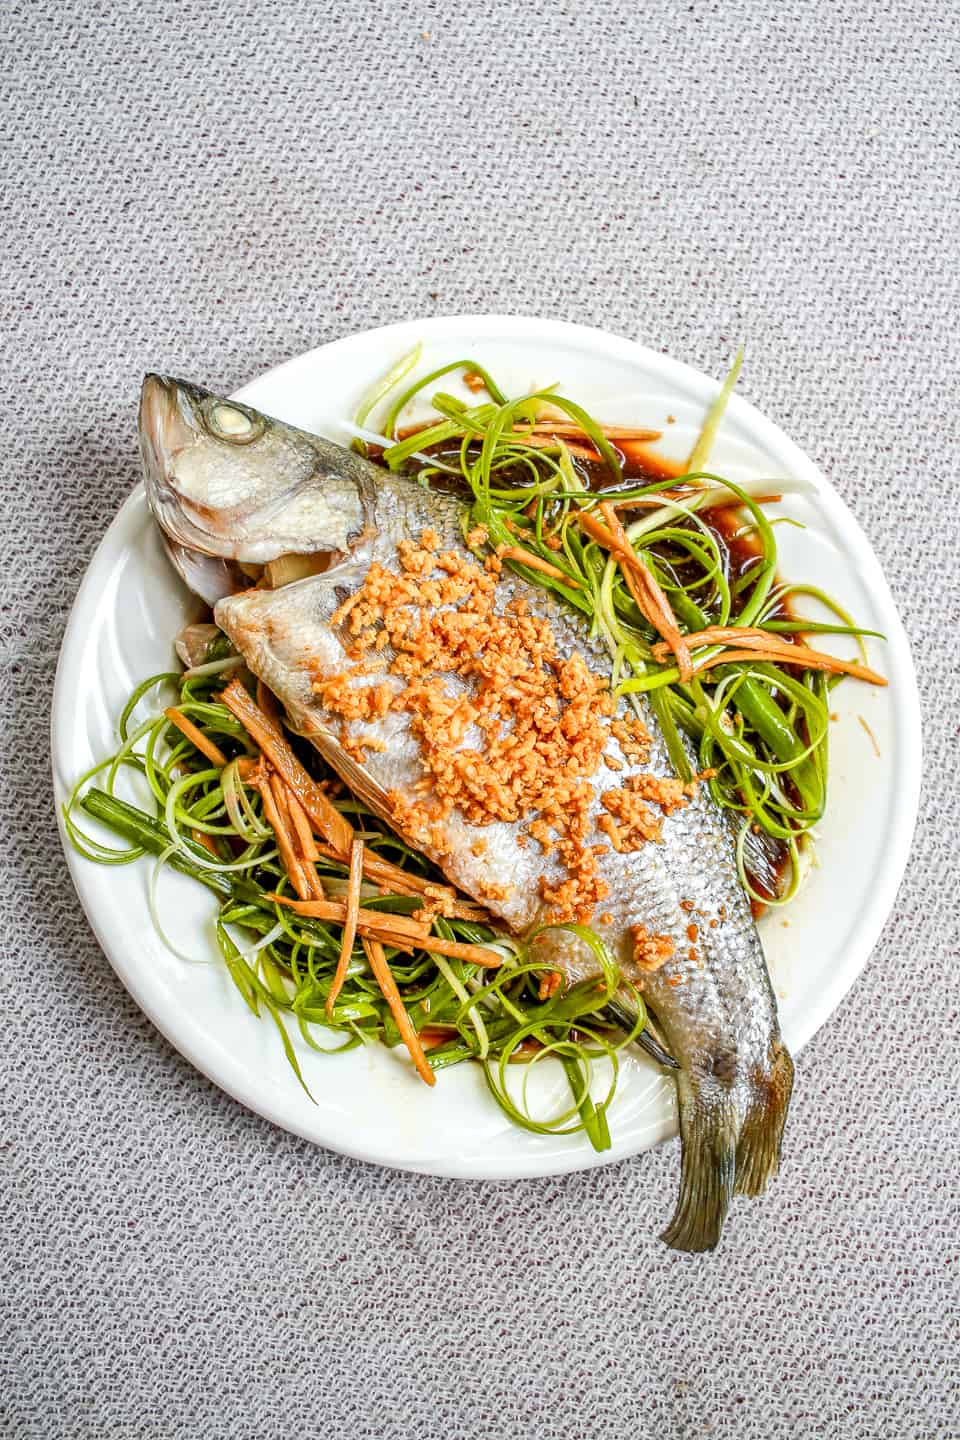 Steamed Whole Fish with Ginger, Scallion and Crispy Garlic (Cá Hấp Hành Gừng)